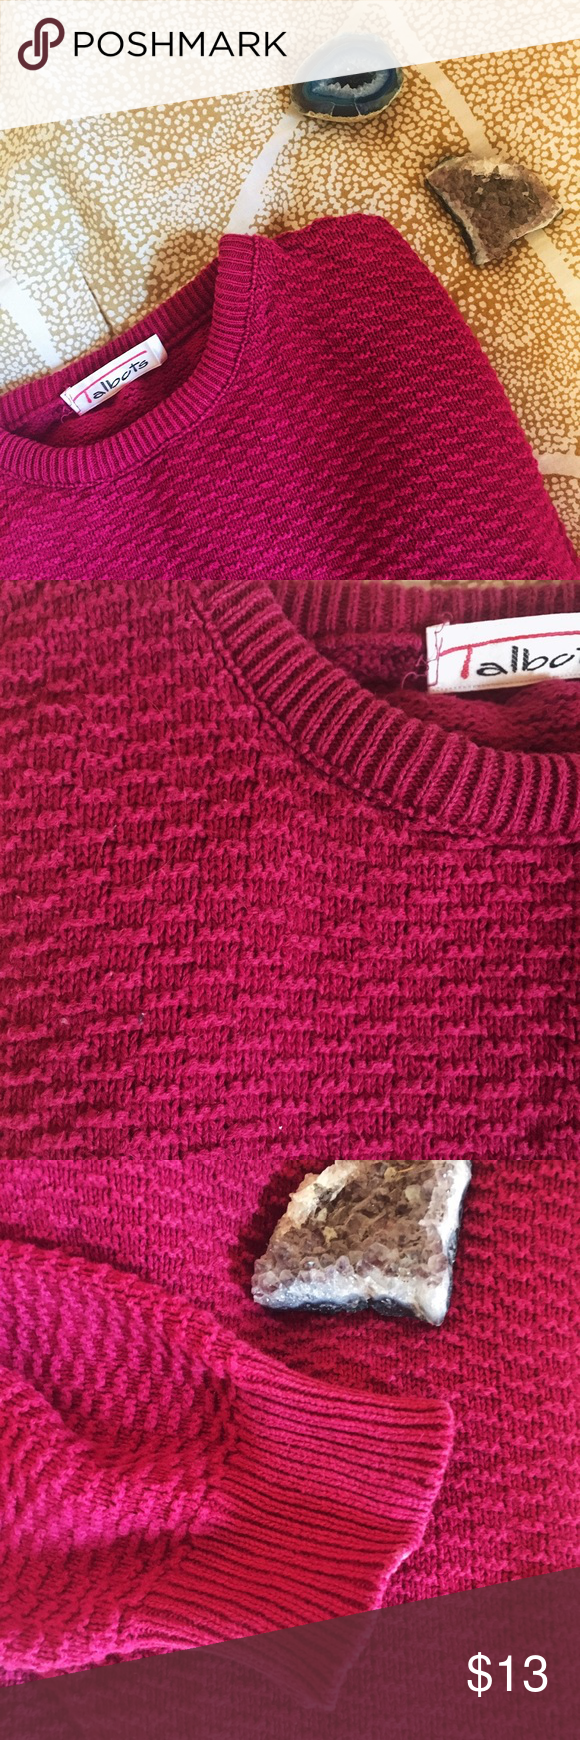 Talbots Sweater | Pink, Sweater sale and And then